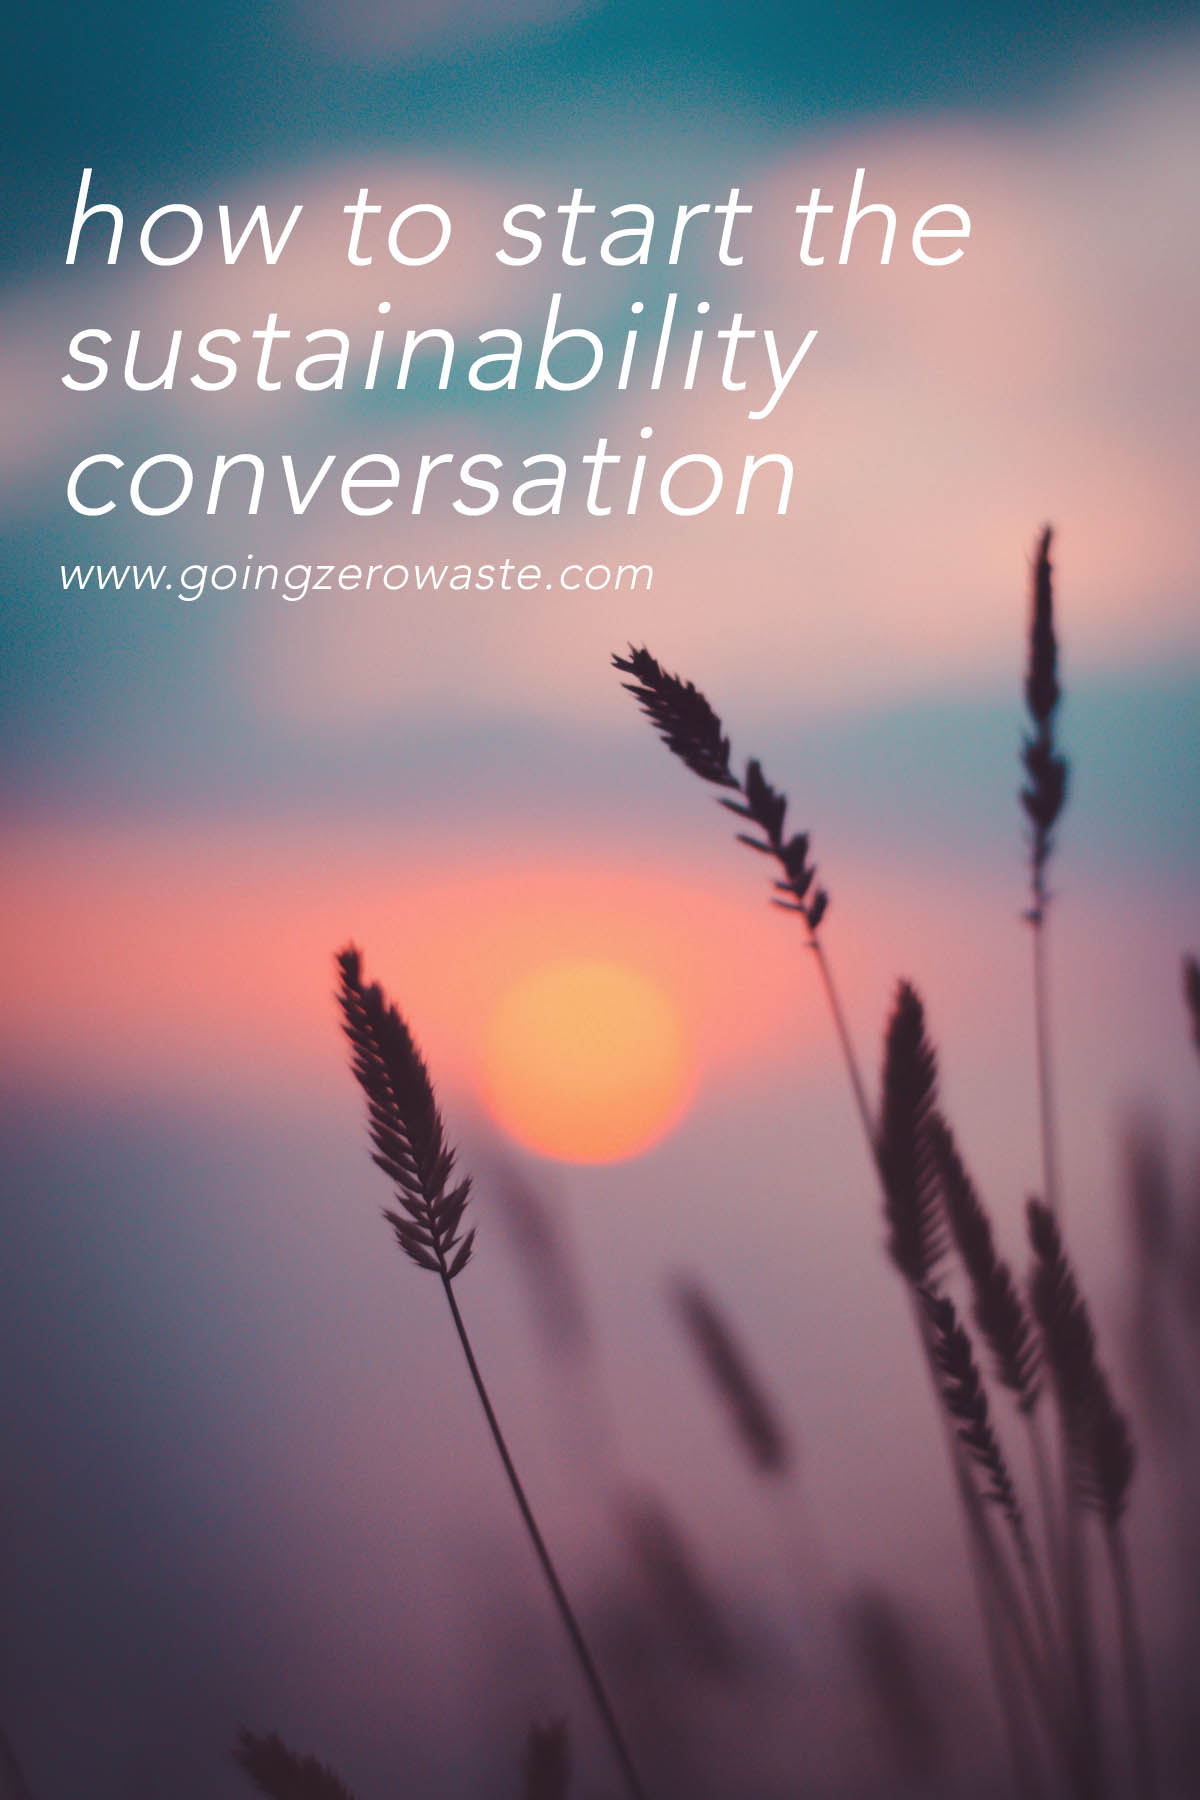 How to start the sustainability conversation from www.goingzerowaste.com #sustainability #ecofriendly #gogreen #zerowaste